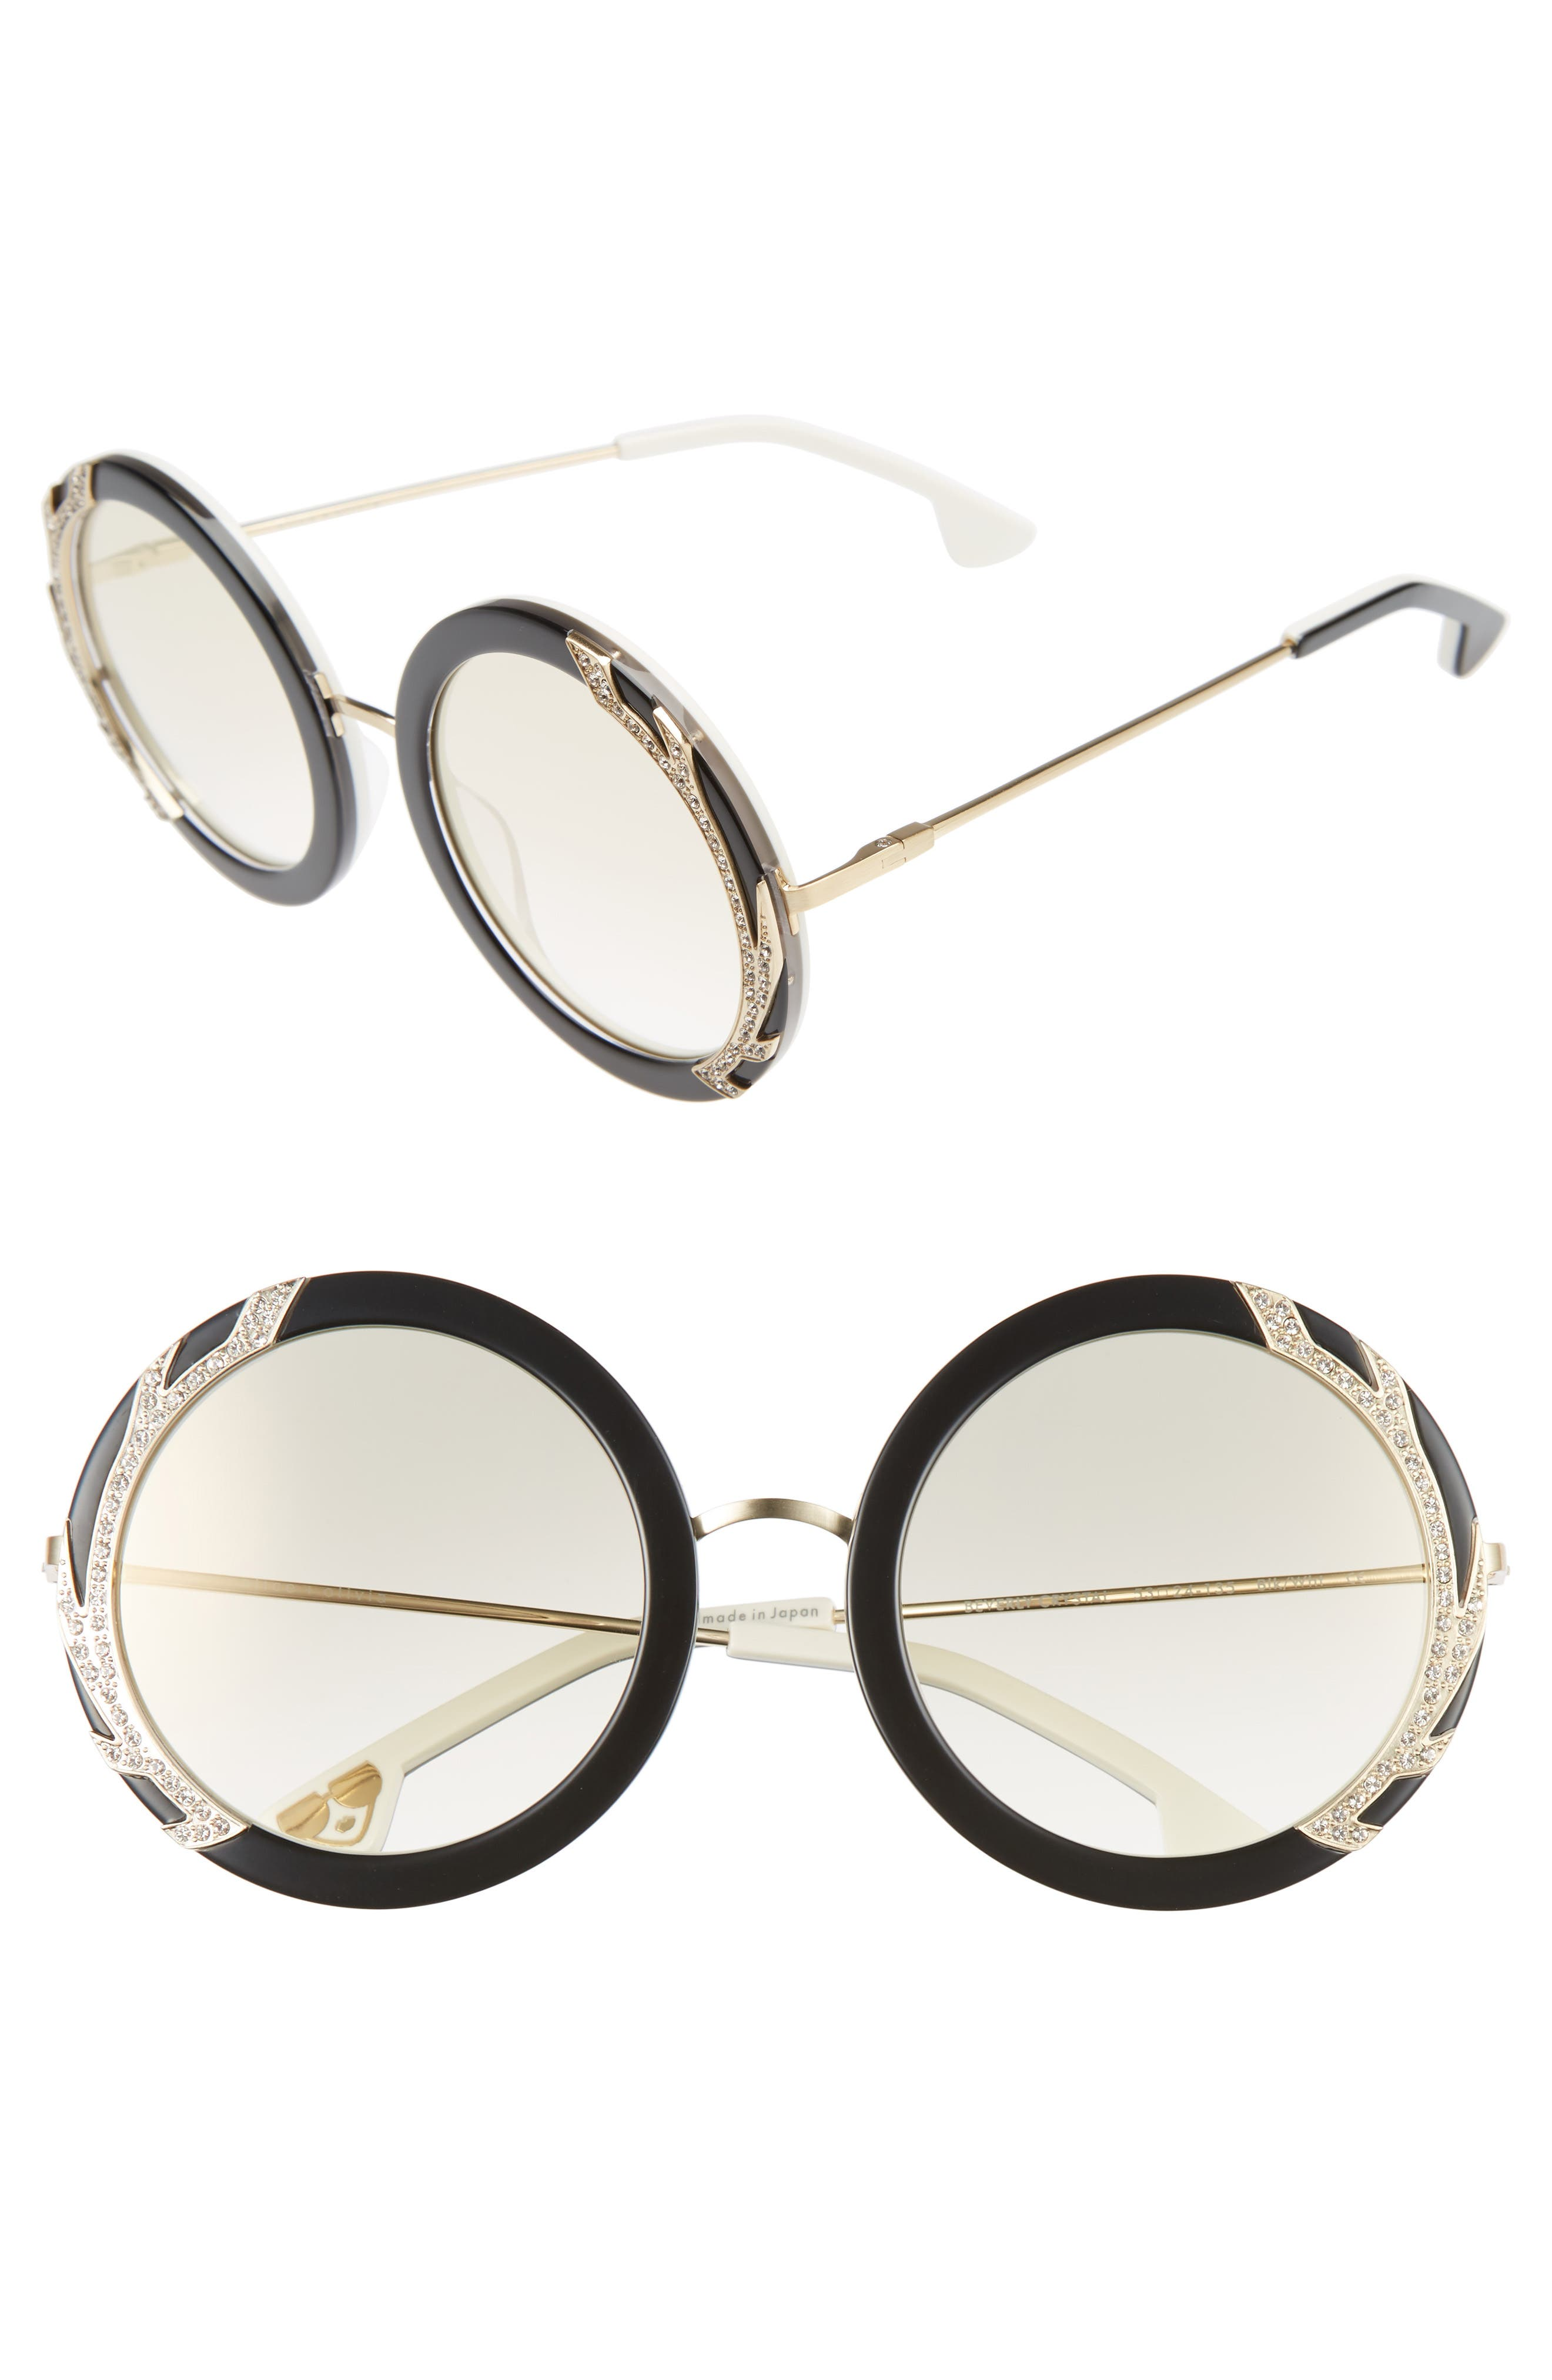 Main Image - Alice + Olivia Beverly Crystal 53mm Special Fit Round Sunglasses